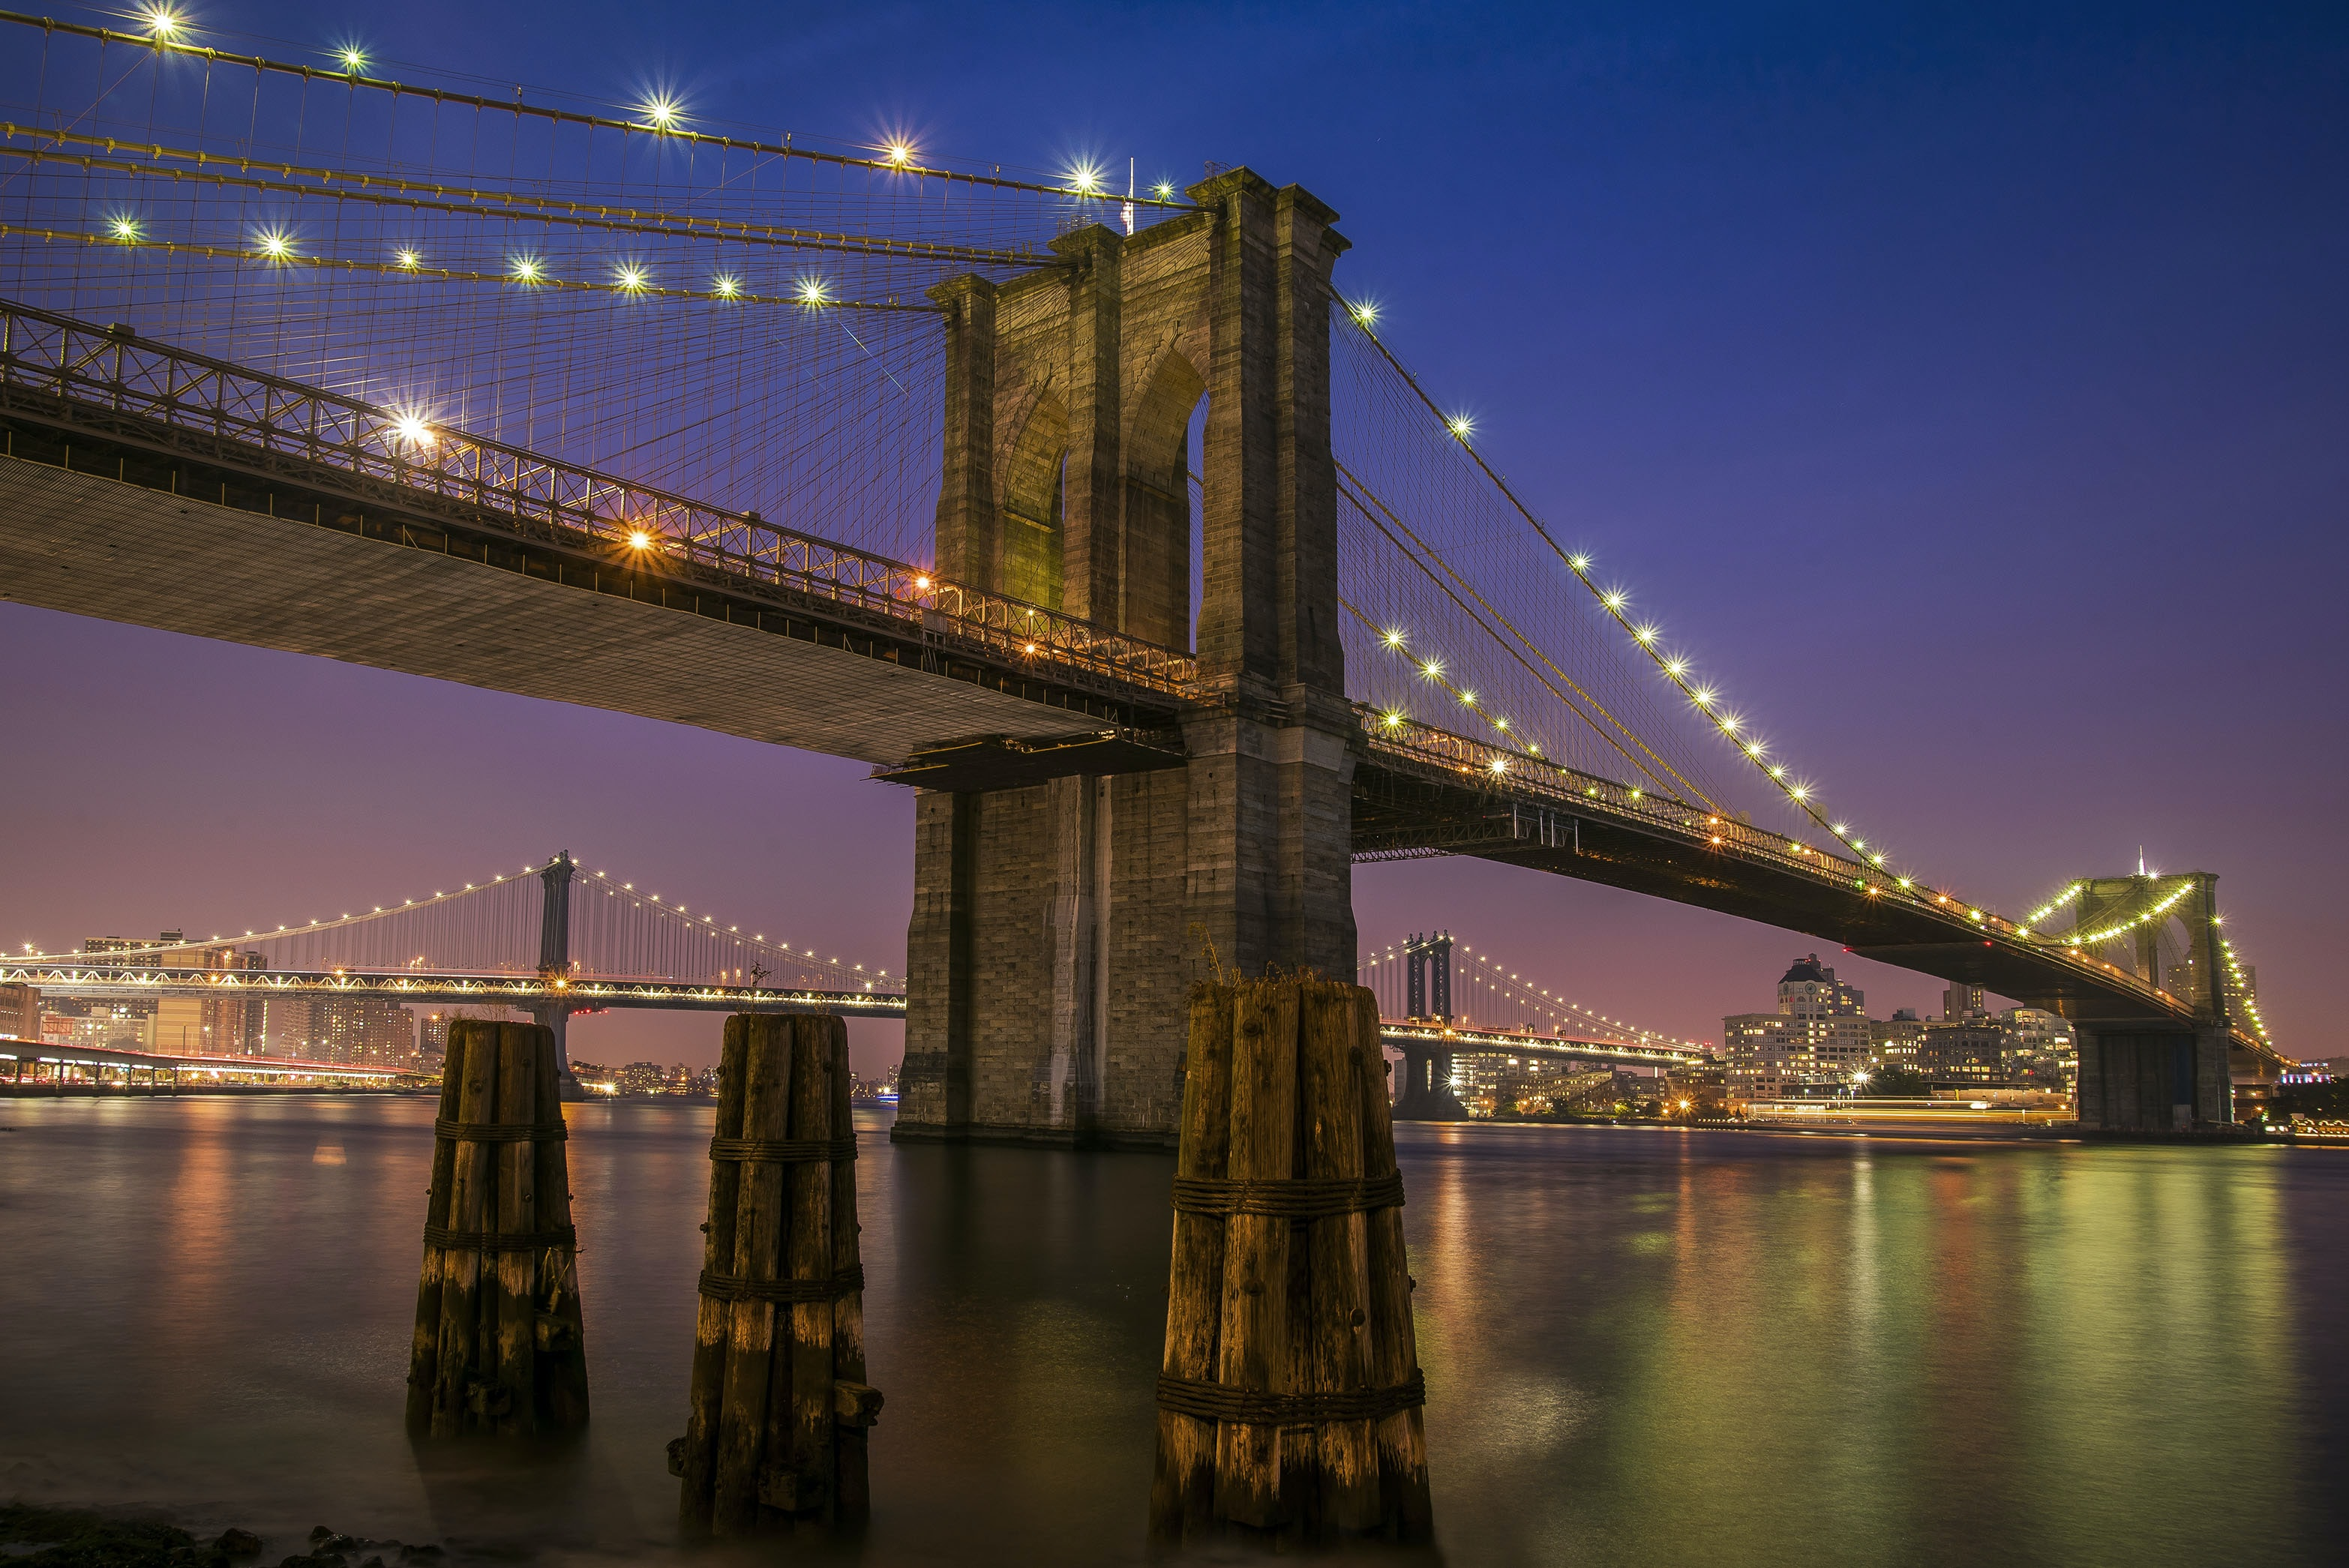 Brooklyn bridge with lights at night time